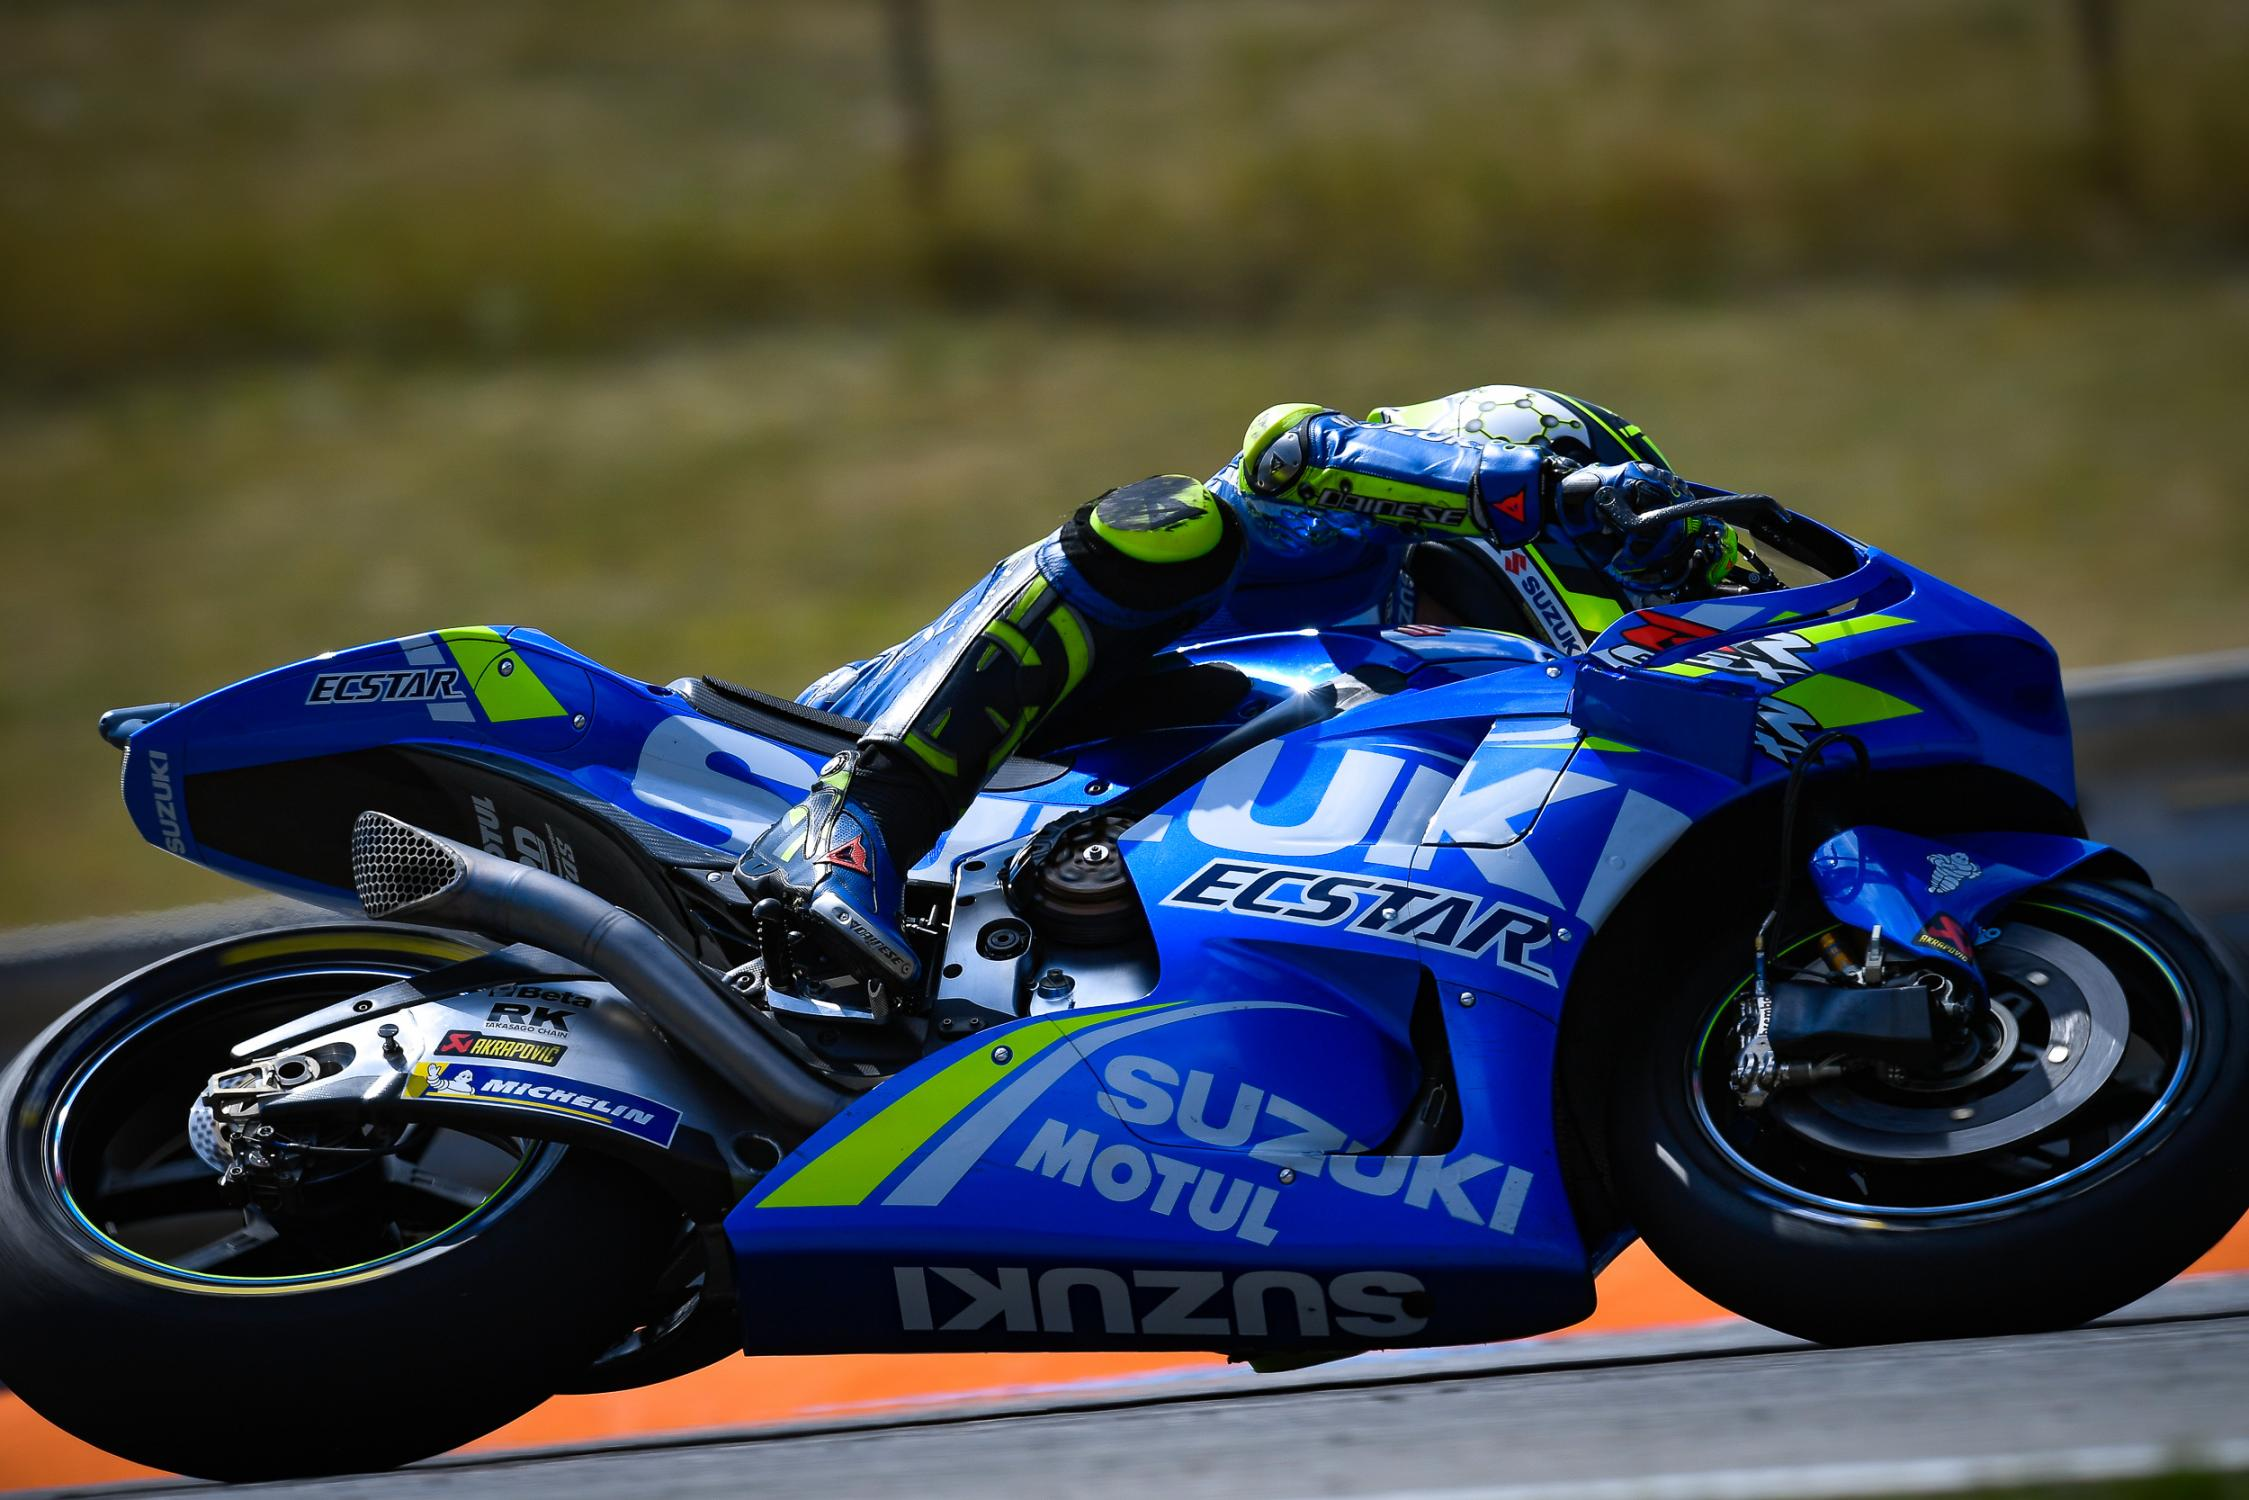 29-andrea-iannone-ita_ds53259.gallery_full_top_fullscreen.jpg